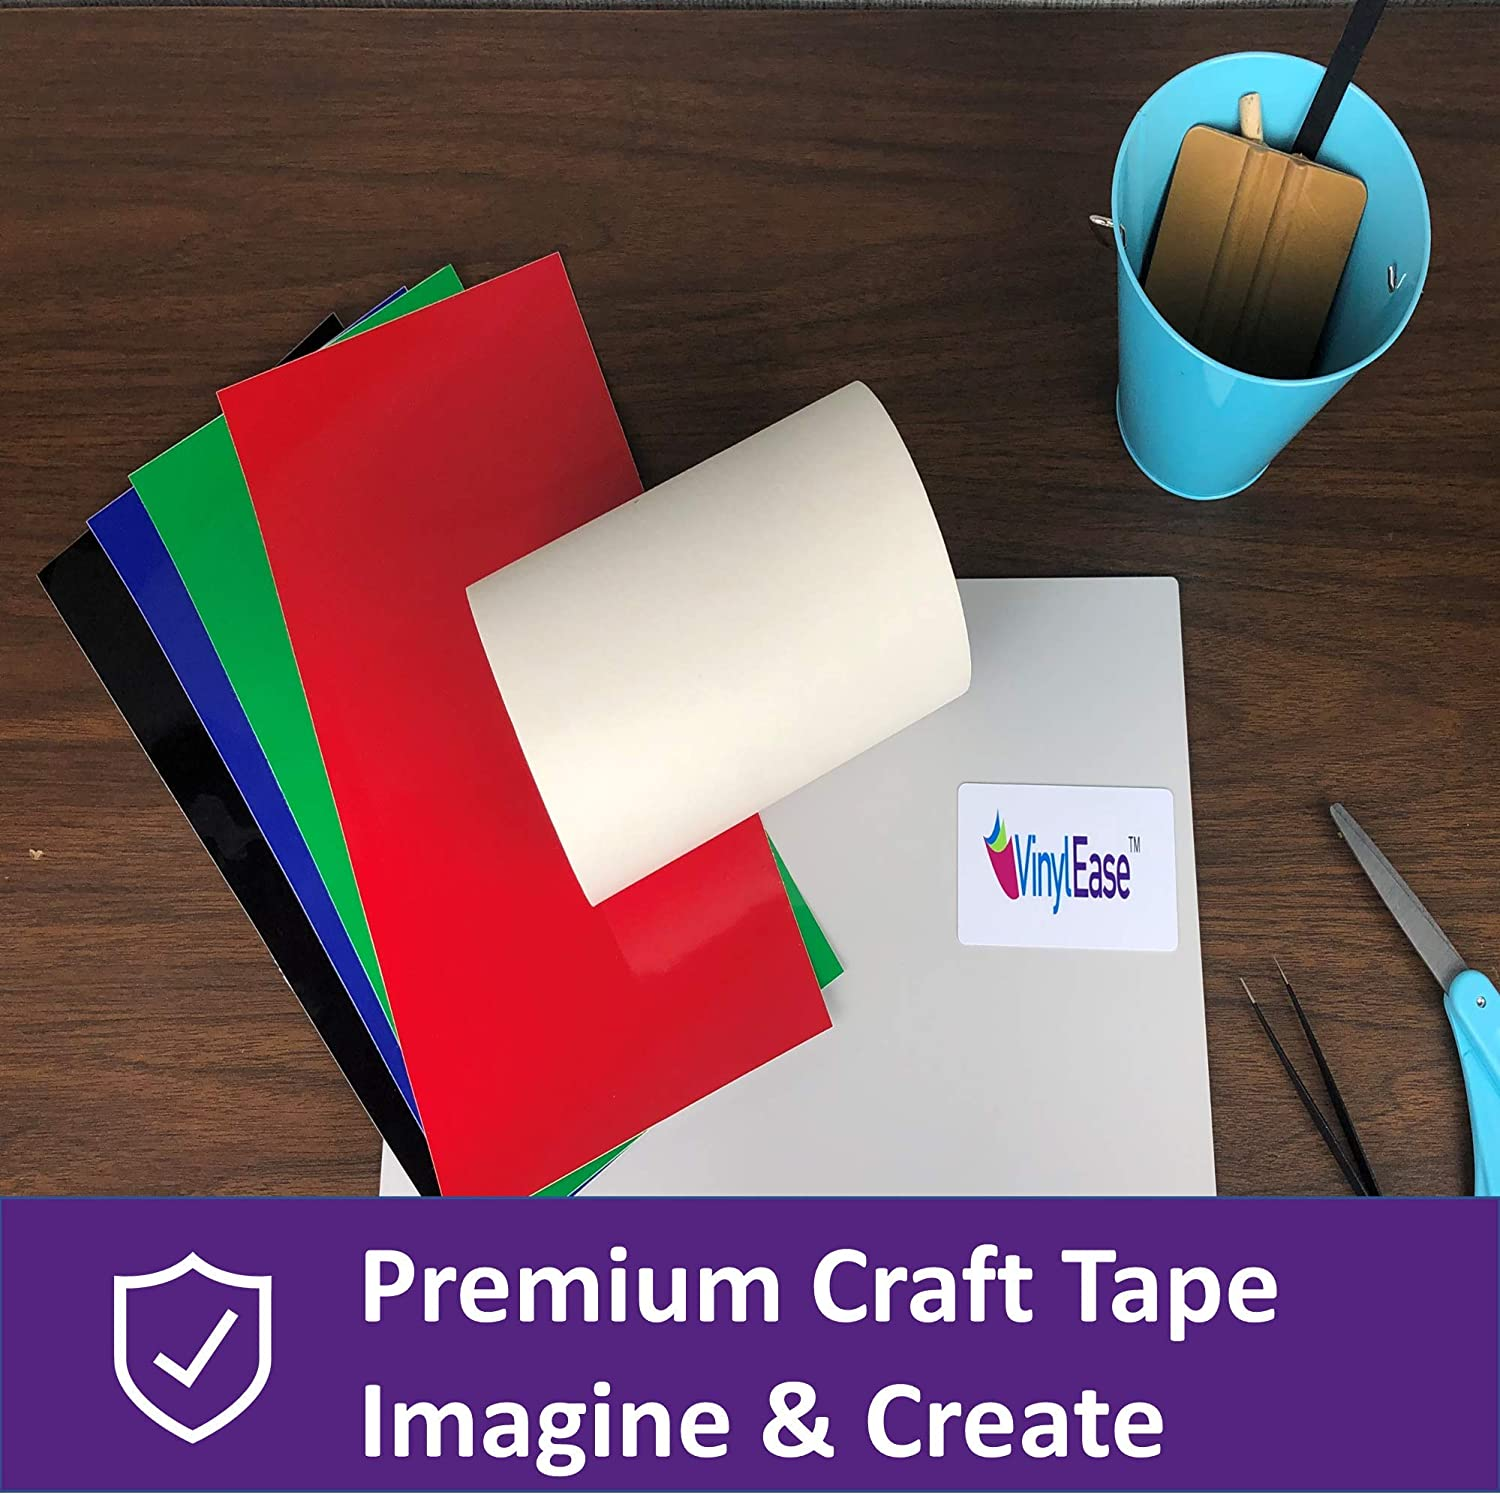 Wall Words and More Works with a Variety of Vinyl Signs Vinyl Ease 6 inch x 150 feet roll of Paper Transfer Tape with a Medium Tack Layflat Adhesive V0843 Great for Decals